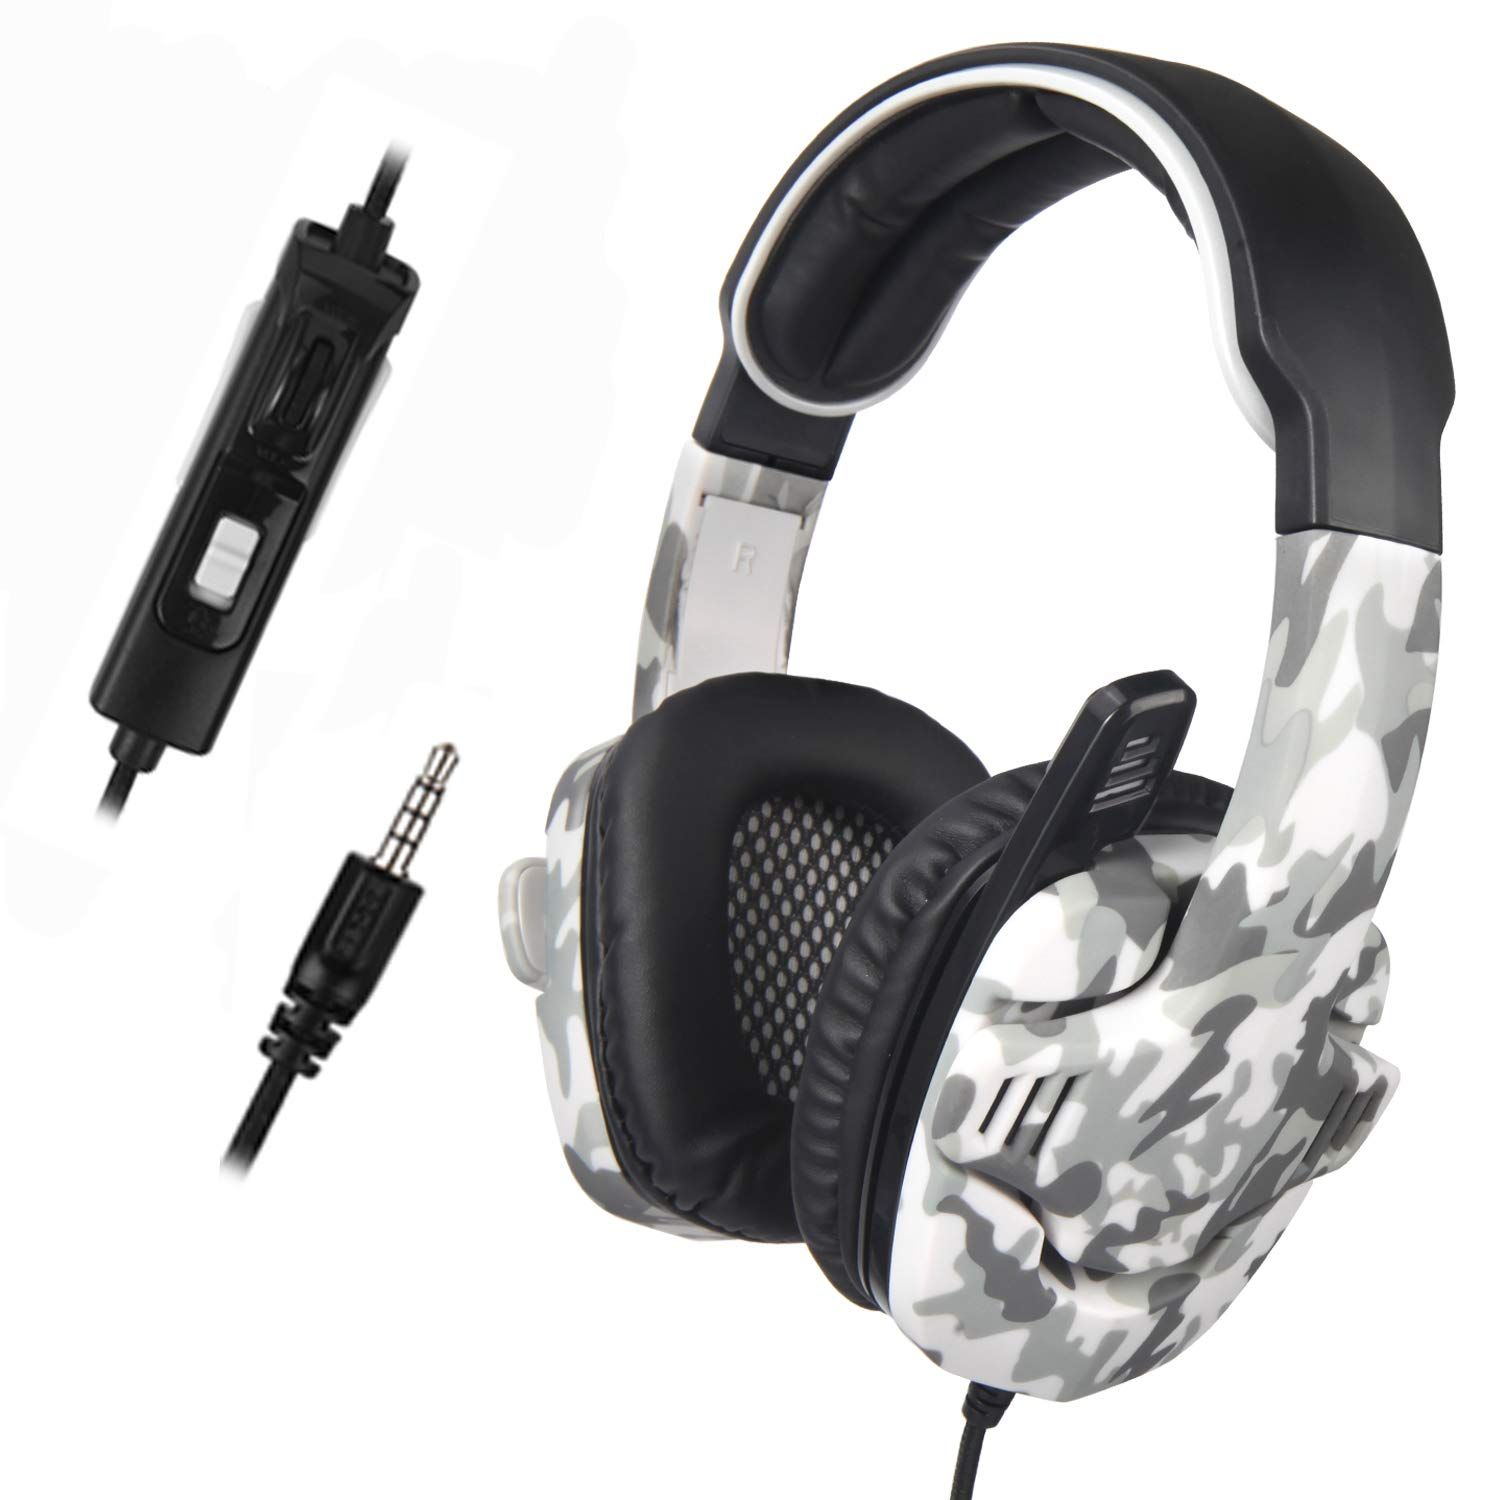 Gaming Headsets for New Xbox One PS4 PC PS4 Gaming Headset SADES SA708 PC Headset Headphone with Microphone